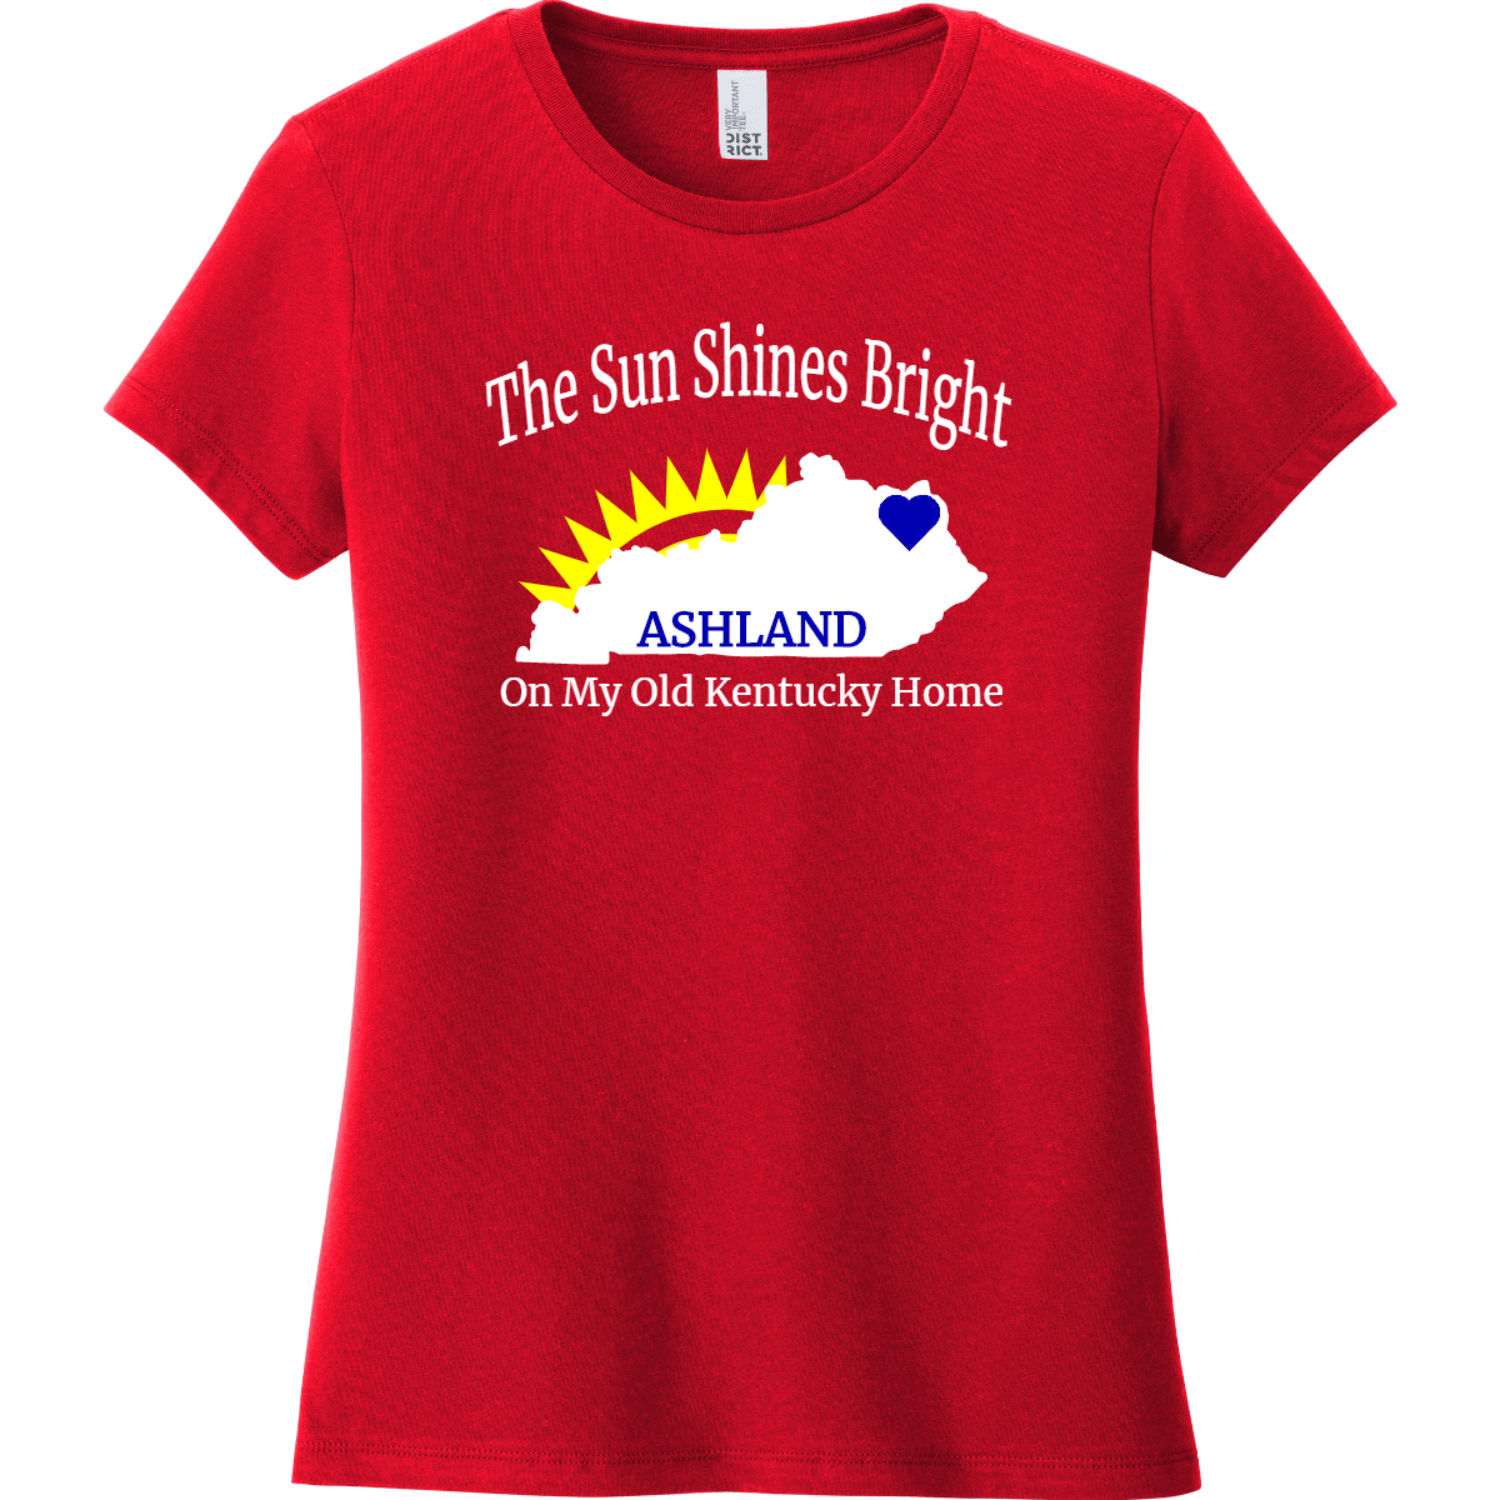 Ashland Kentucky The Sun Shines Bright Ladies T Shirt Classic Red District Women's Very Important Tee DT6002